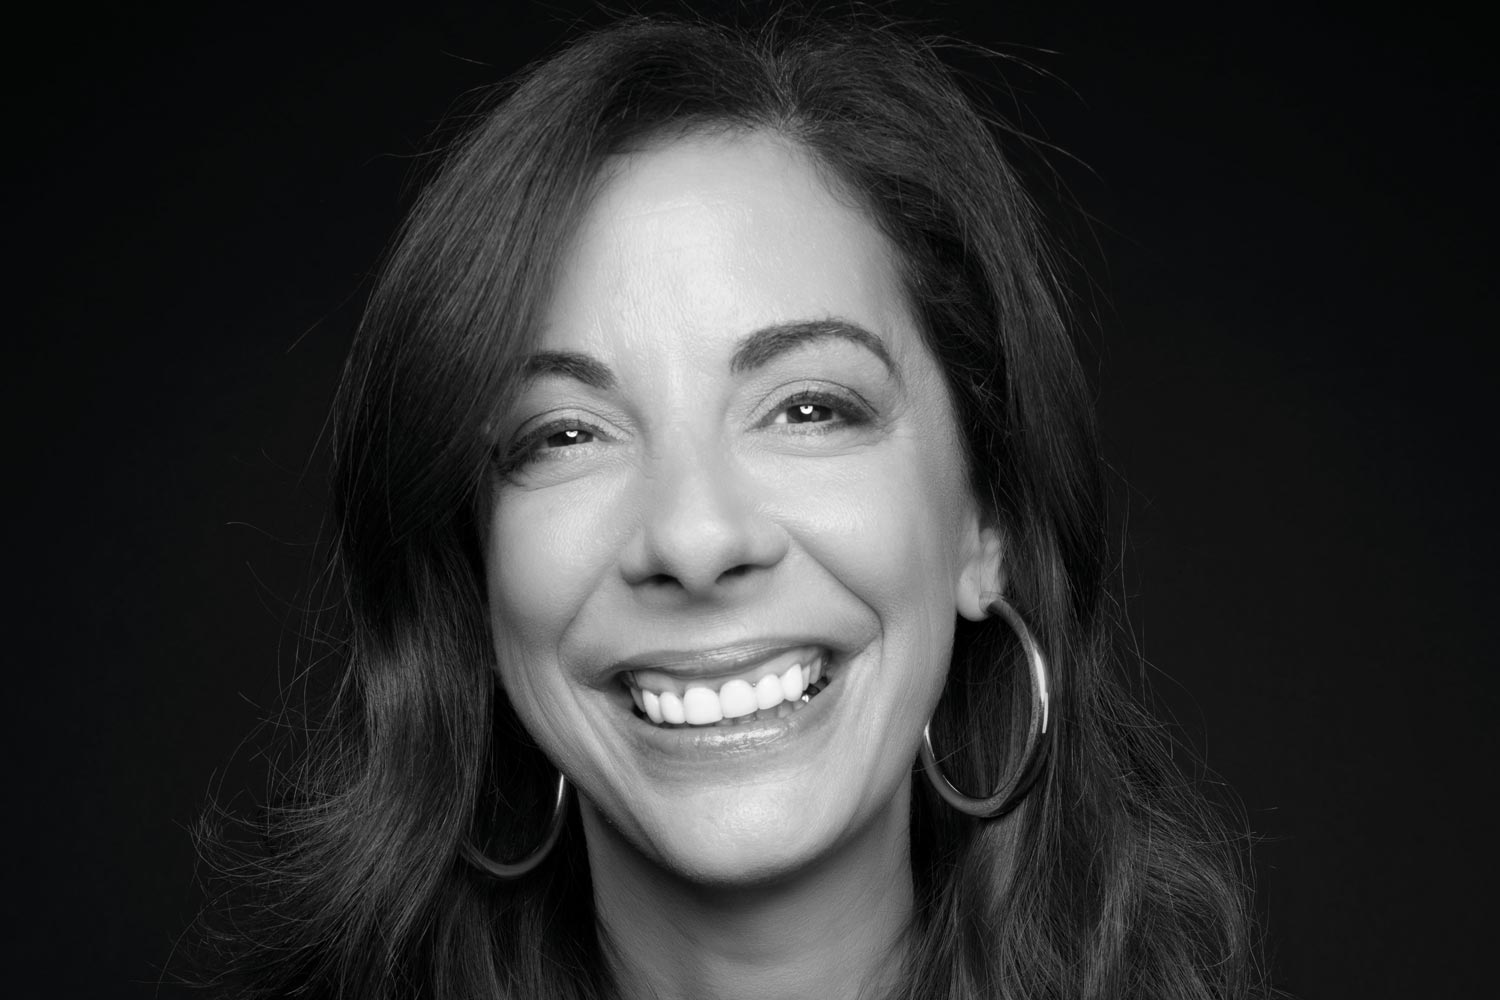 Ogilvy has hired Liz Taylor as its next global chief creative officer